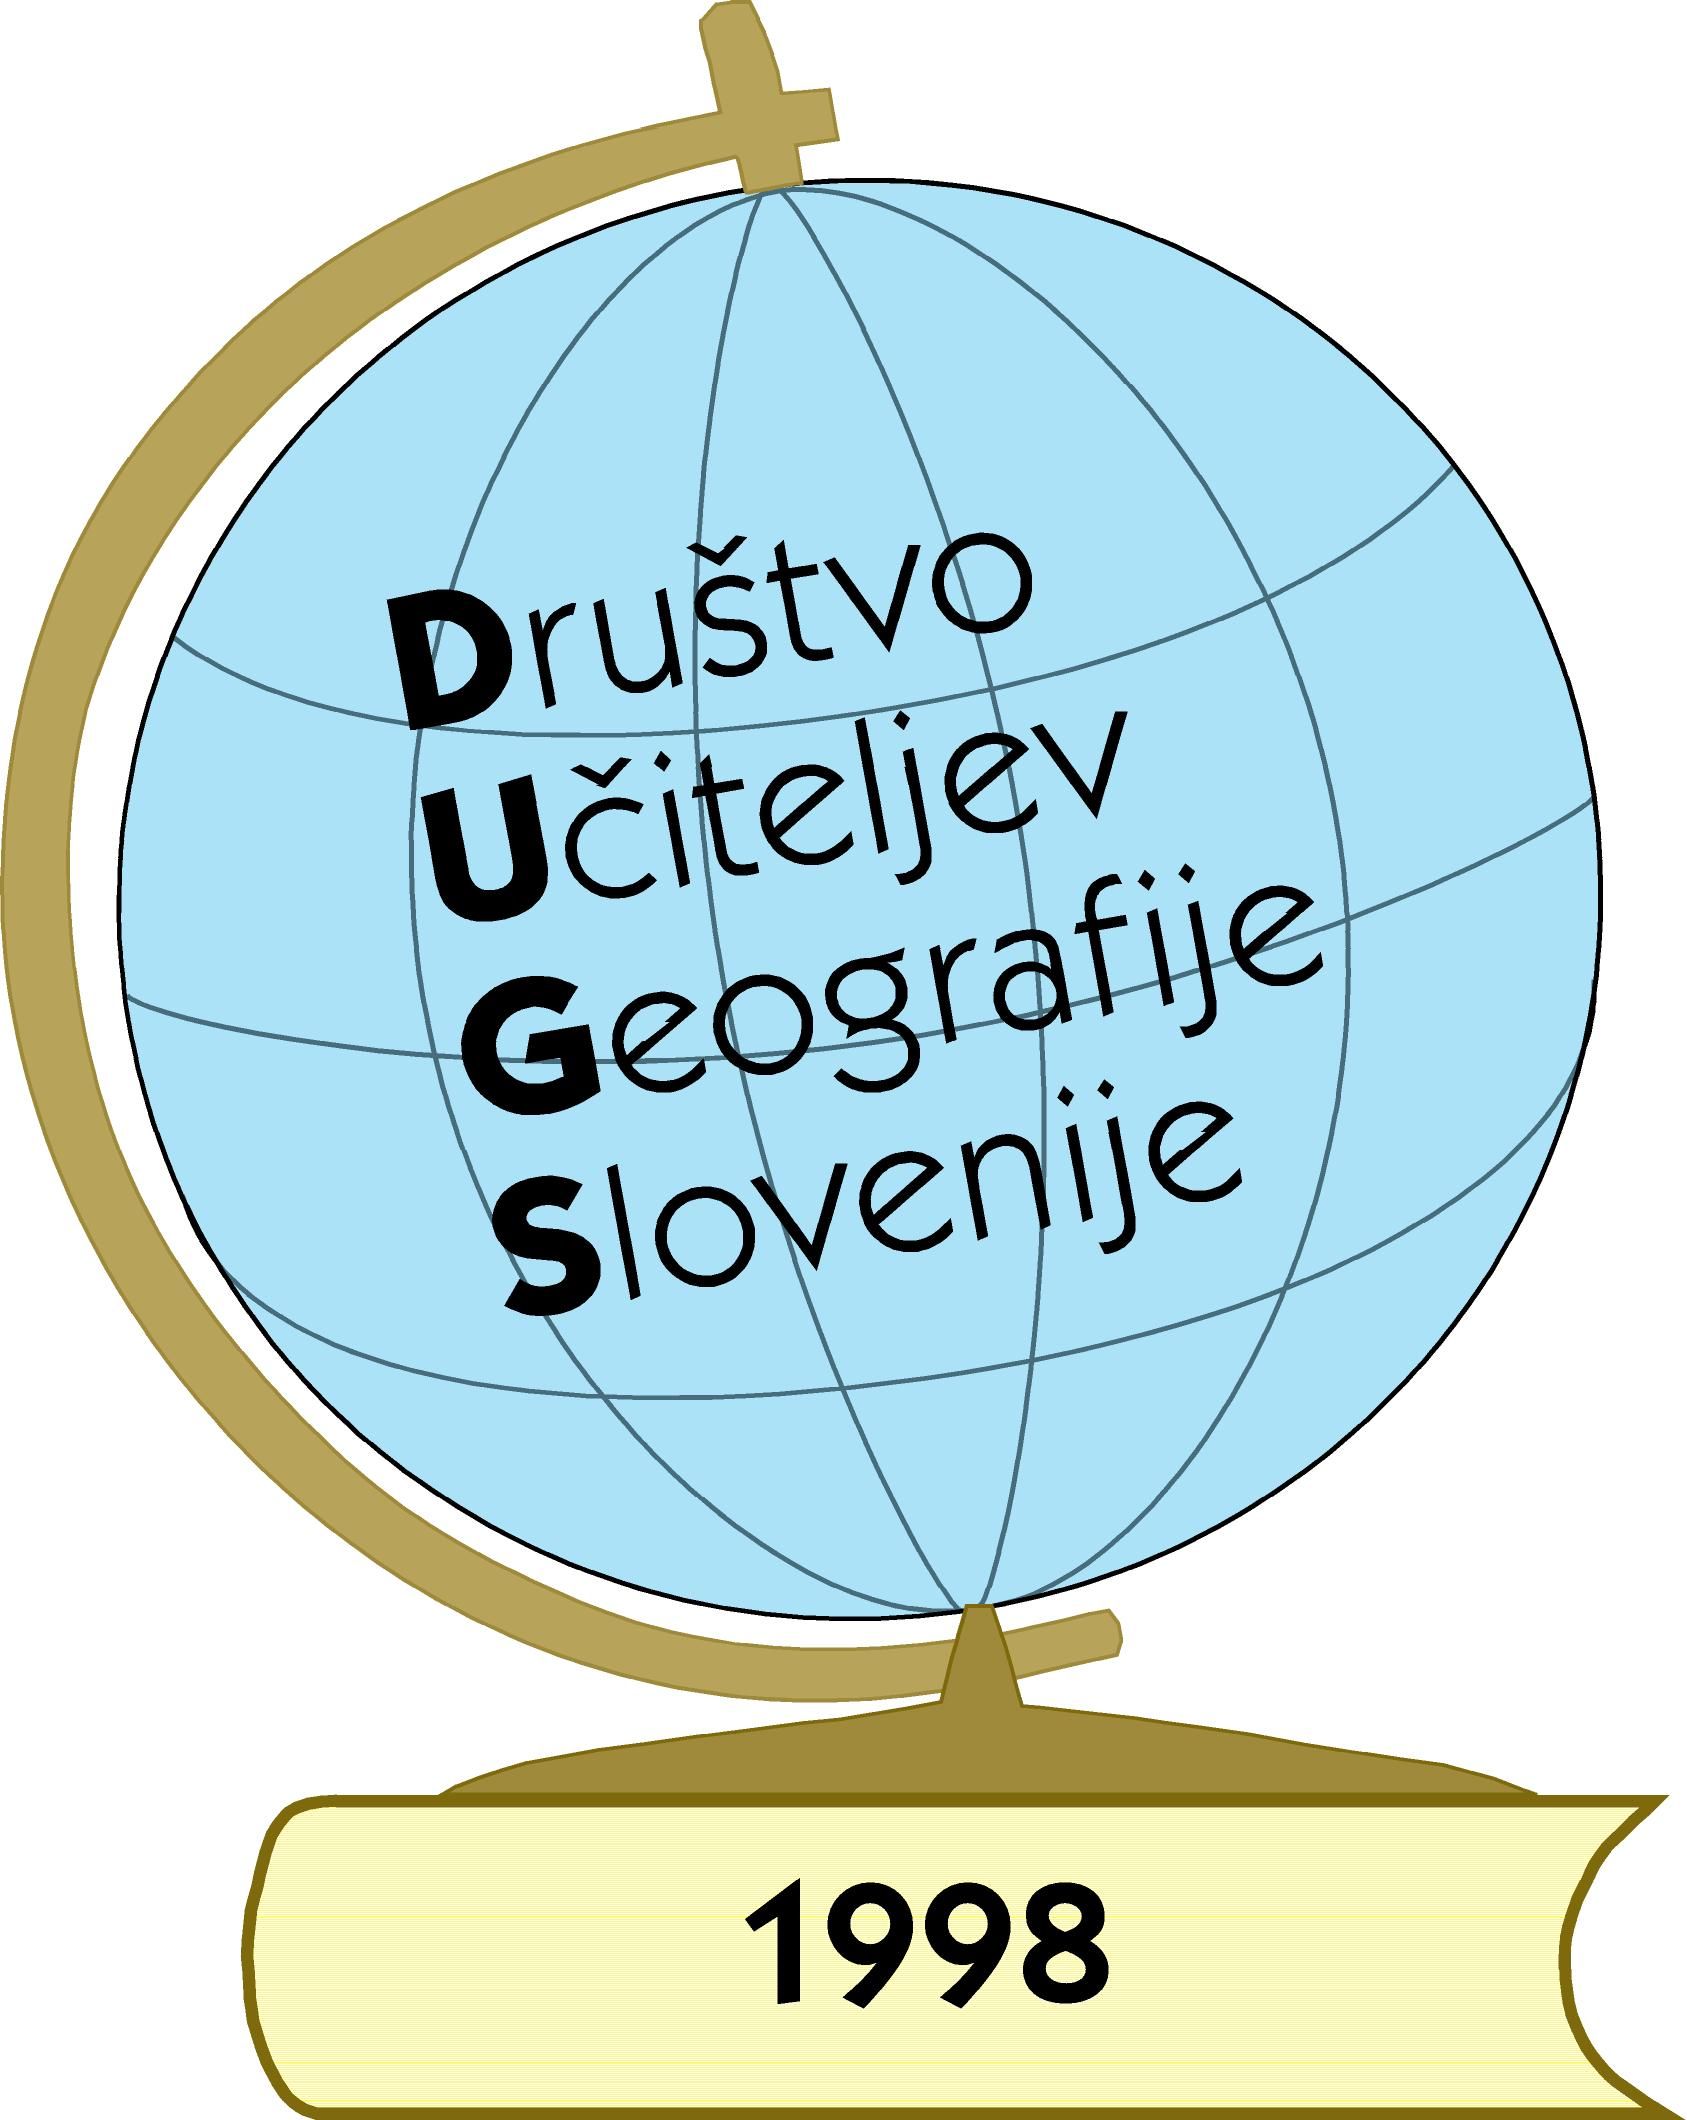 Društvo učiteljev geografije Slovenije